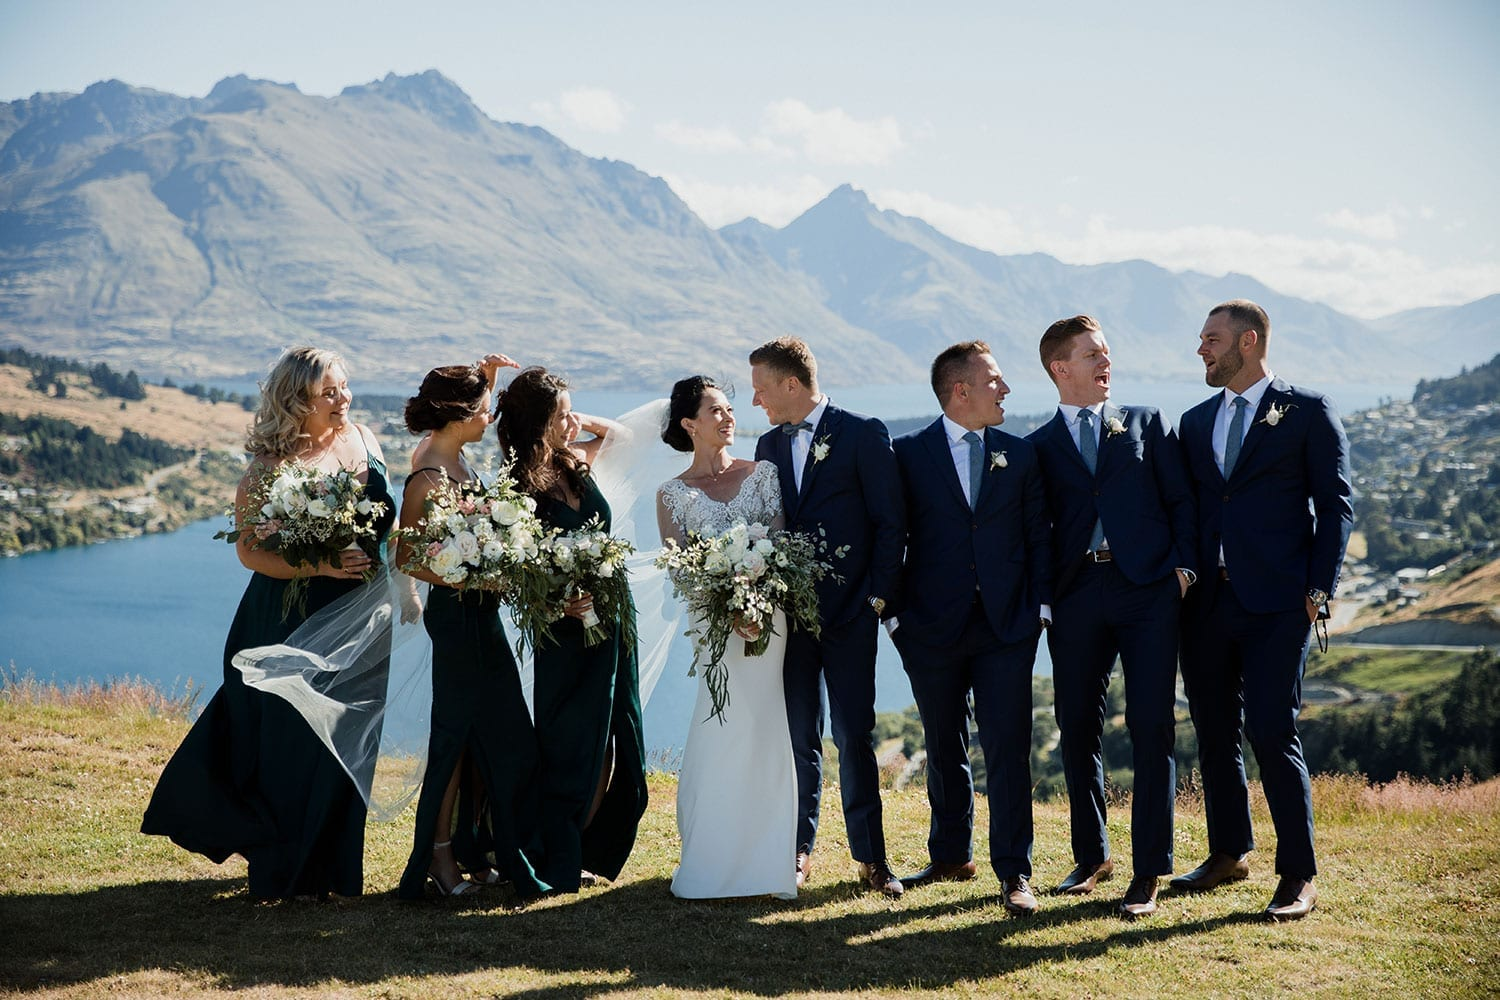 Vinka Design Features Real Weddings - bride in bespoke custom made gown with groom and bridal party with Queenstown with mountains in background